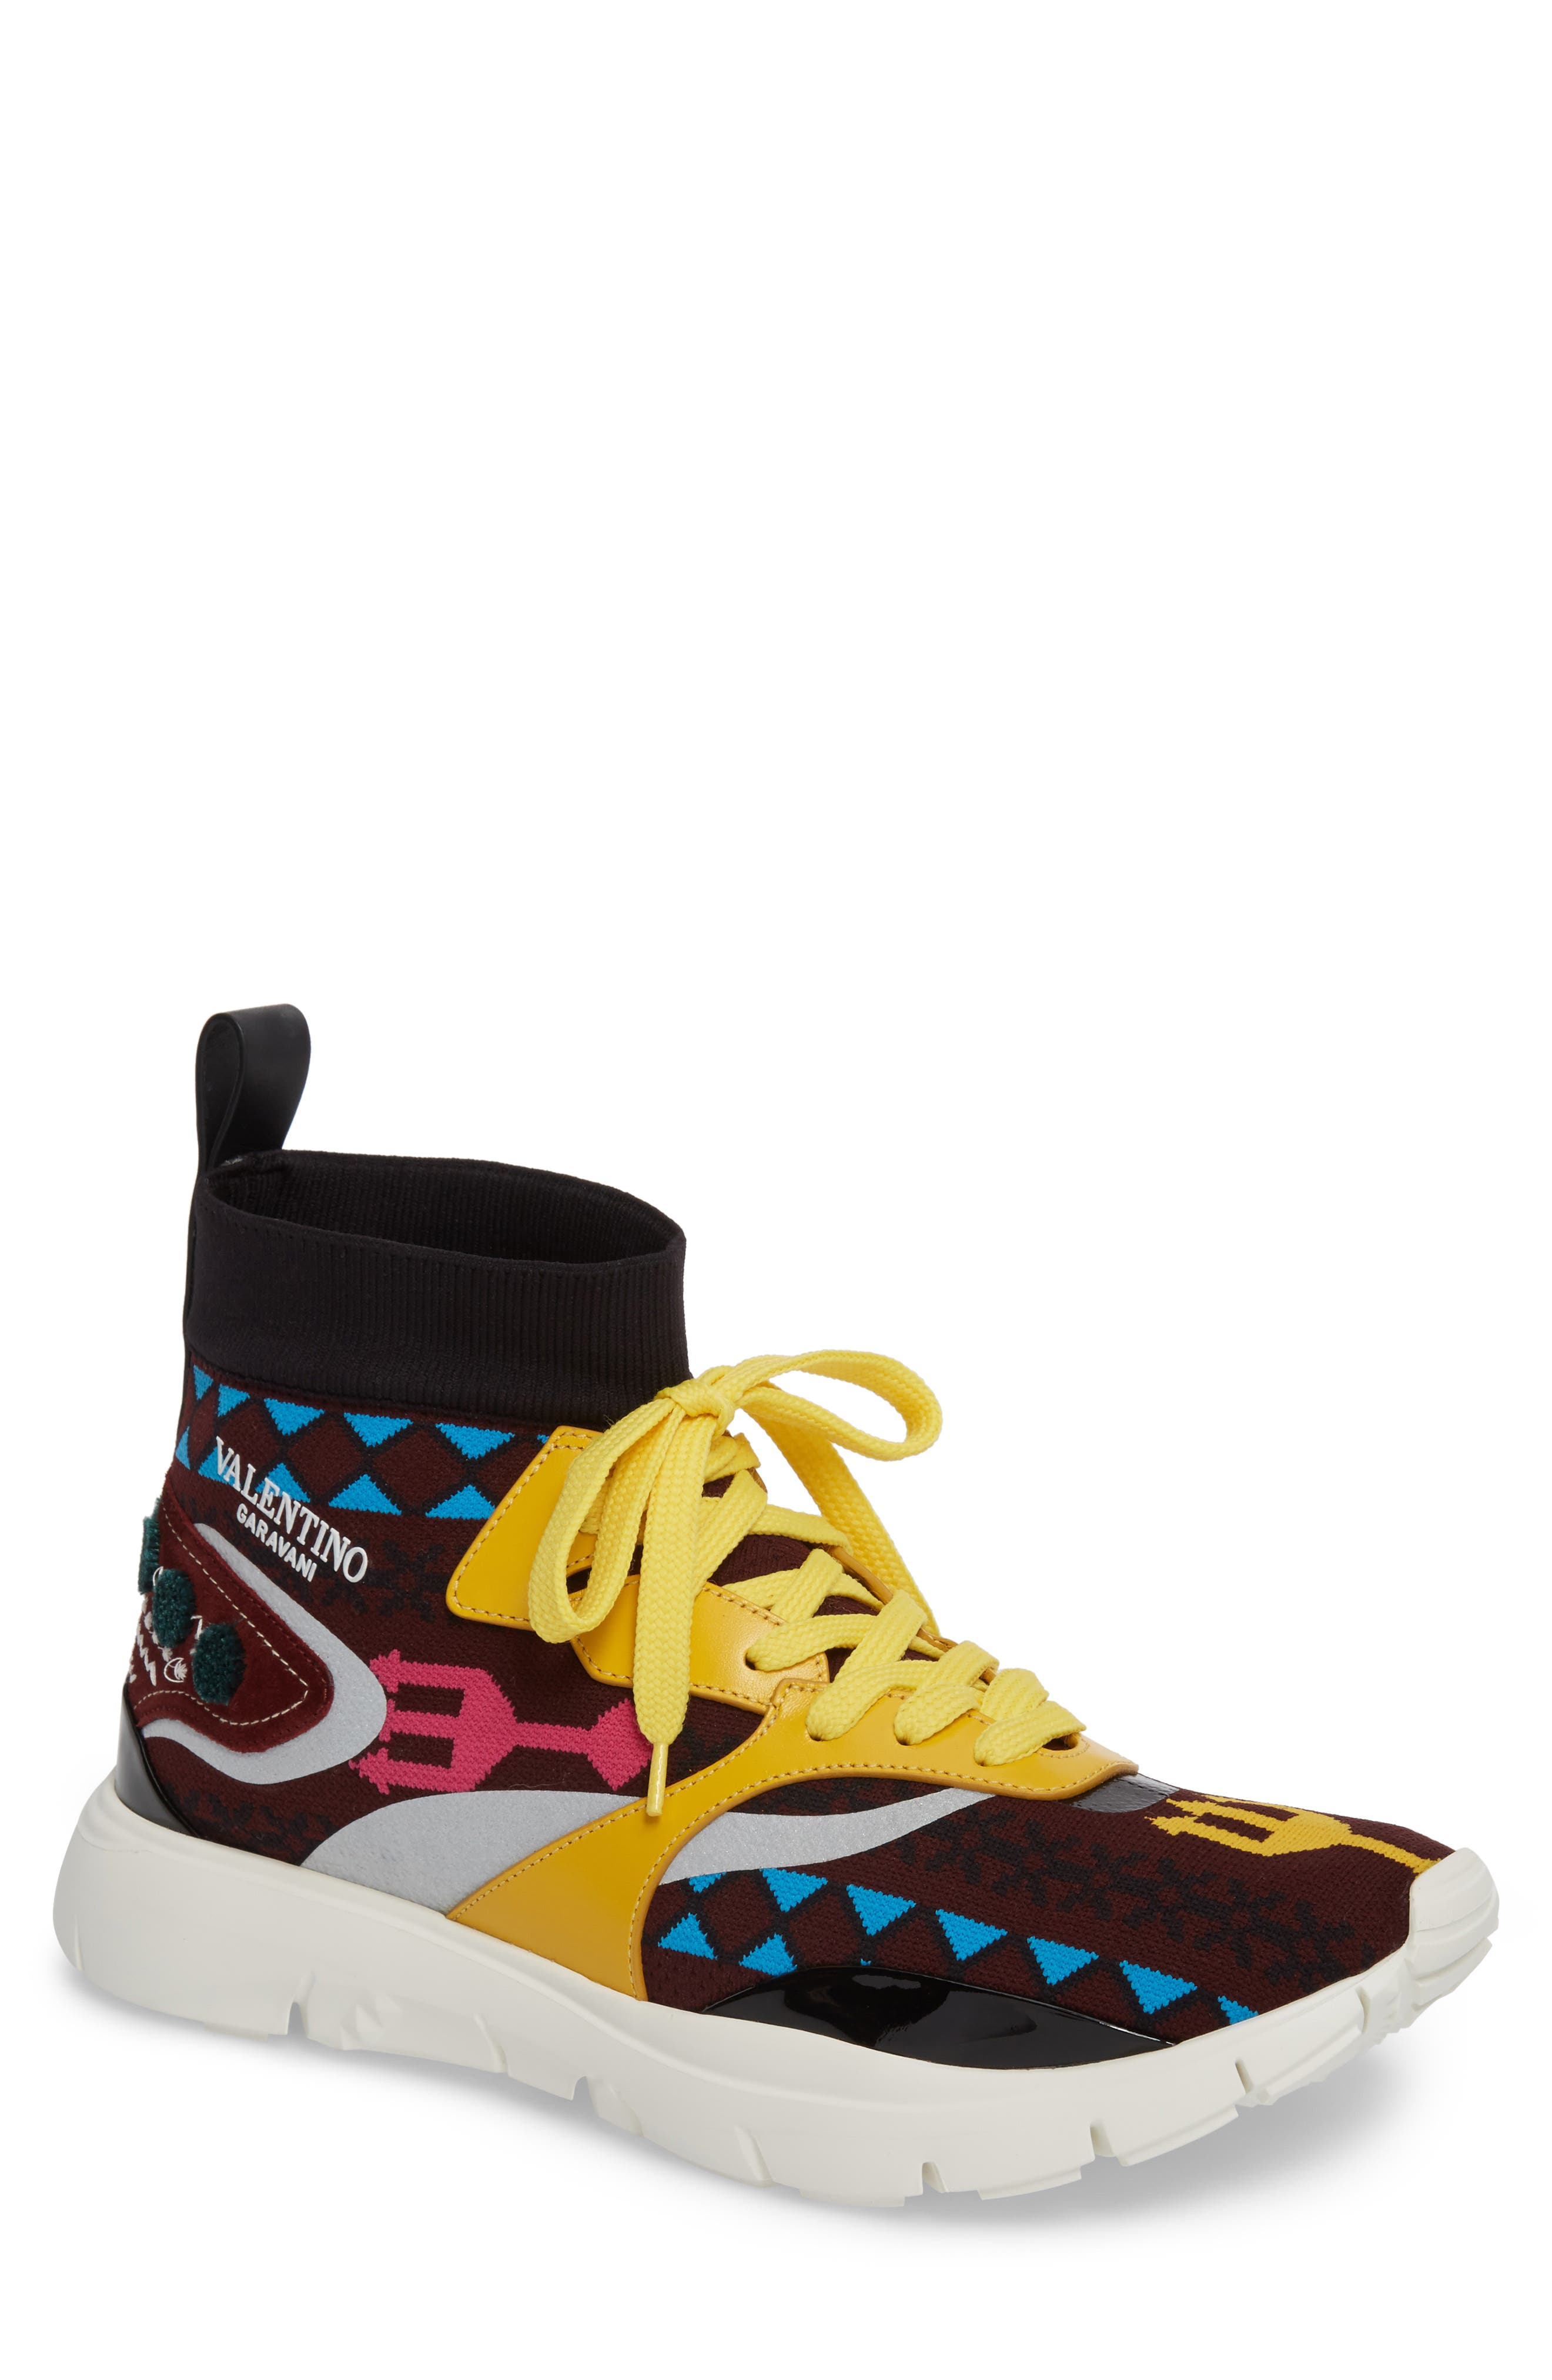 Heroes Embroidery Sneaker,                         Main,                         color, 939